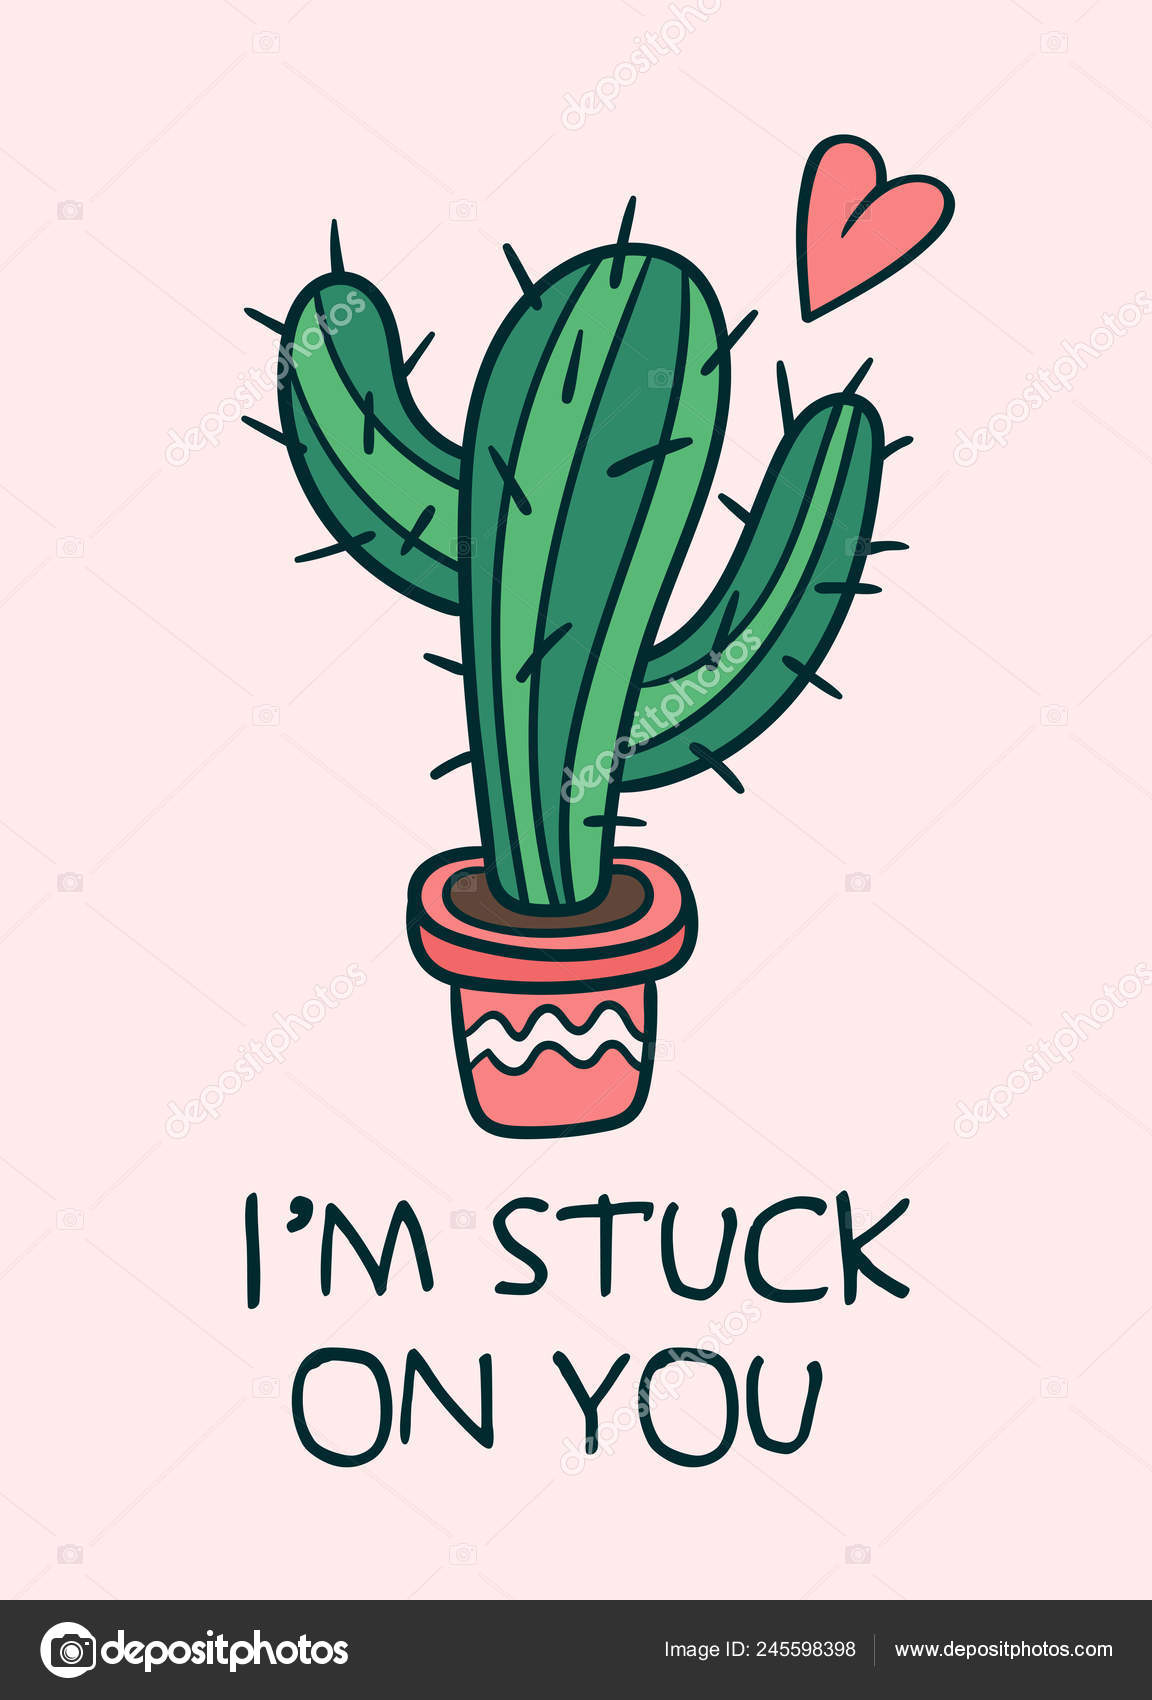 Wallpapers Sweet Cute Love Love Theme Illustration Cute Cactus